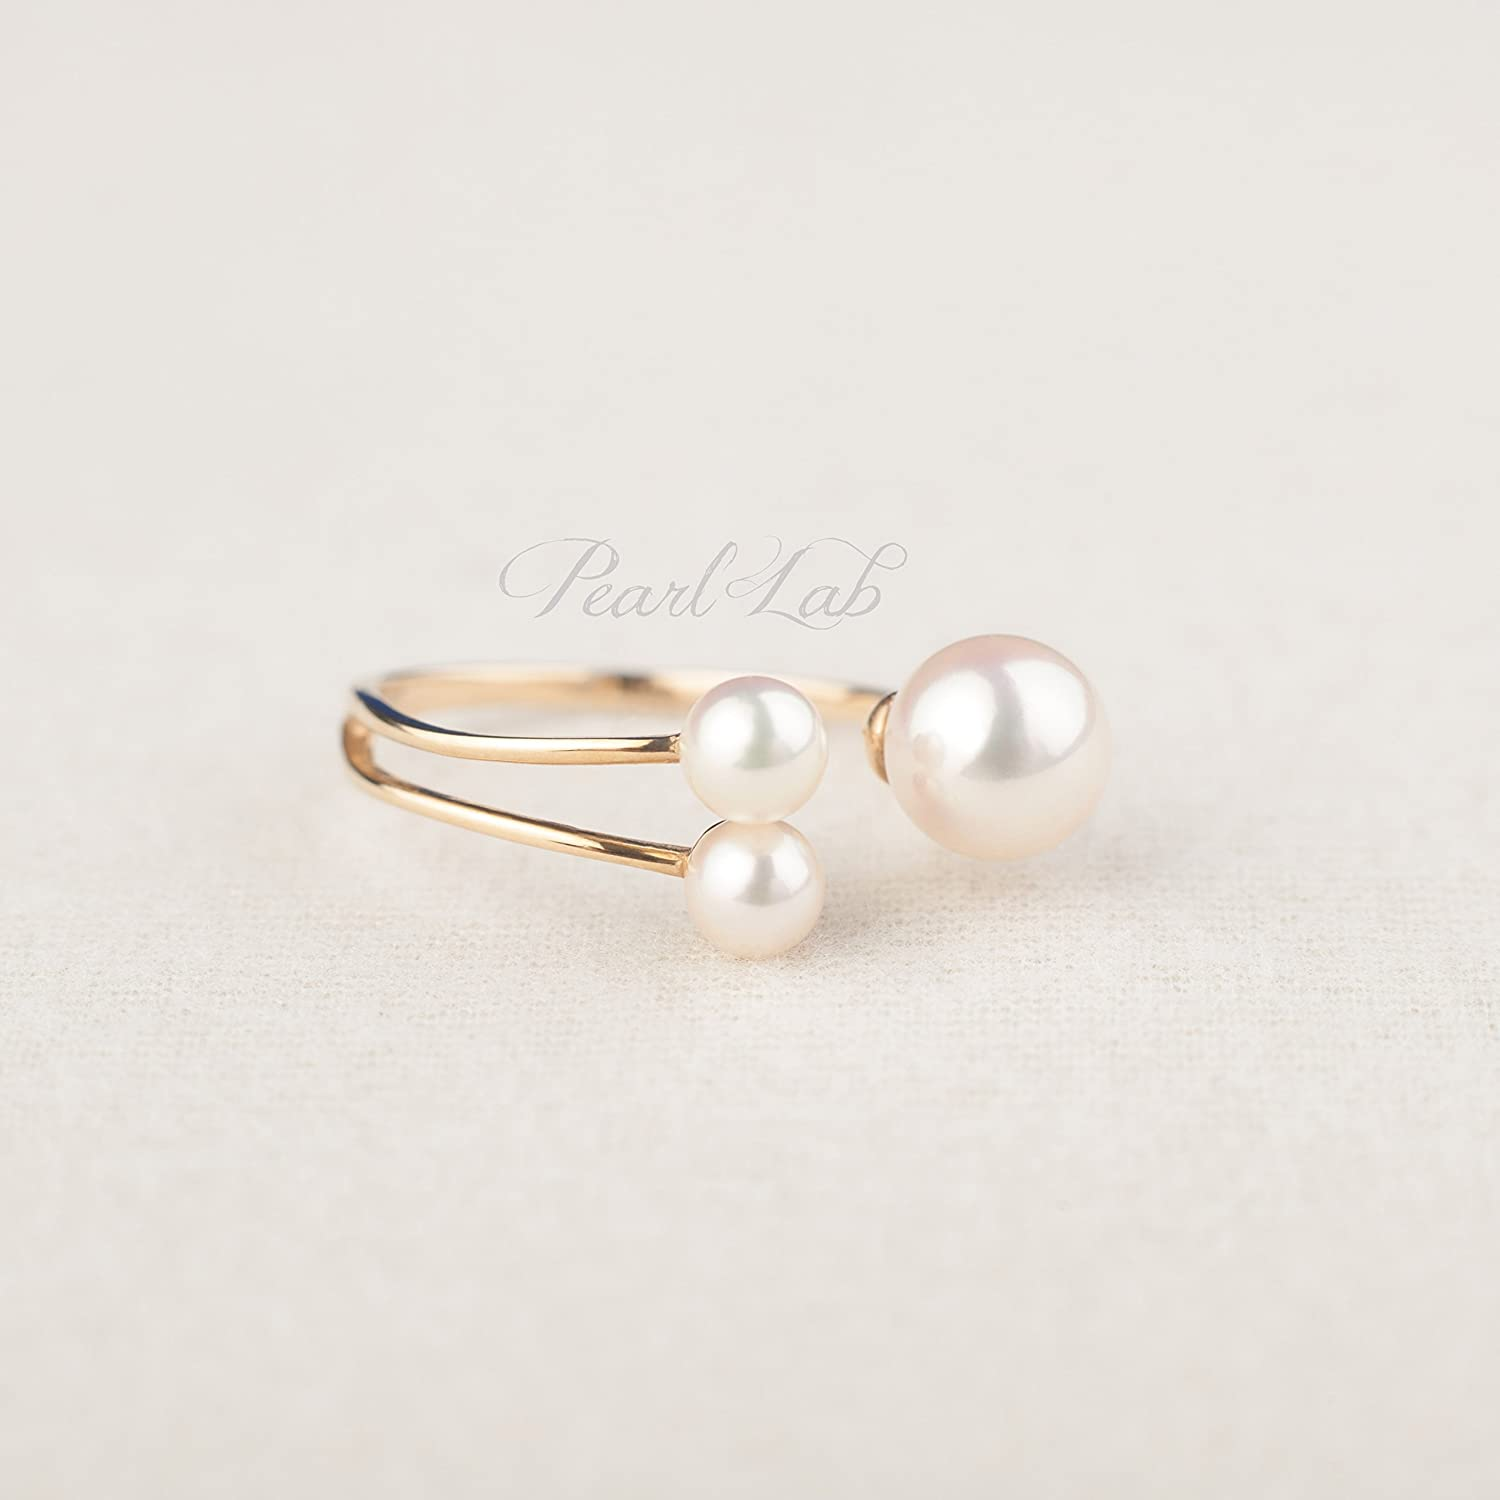 Pearl Ring | 4.2mm & 6.8mm Round White Akoya Sea Pearl | Excellent Luster | 14K Solid Gold | Adjustable Ring | Minimalist Everyday Jewelry